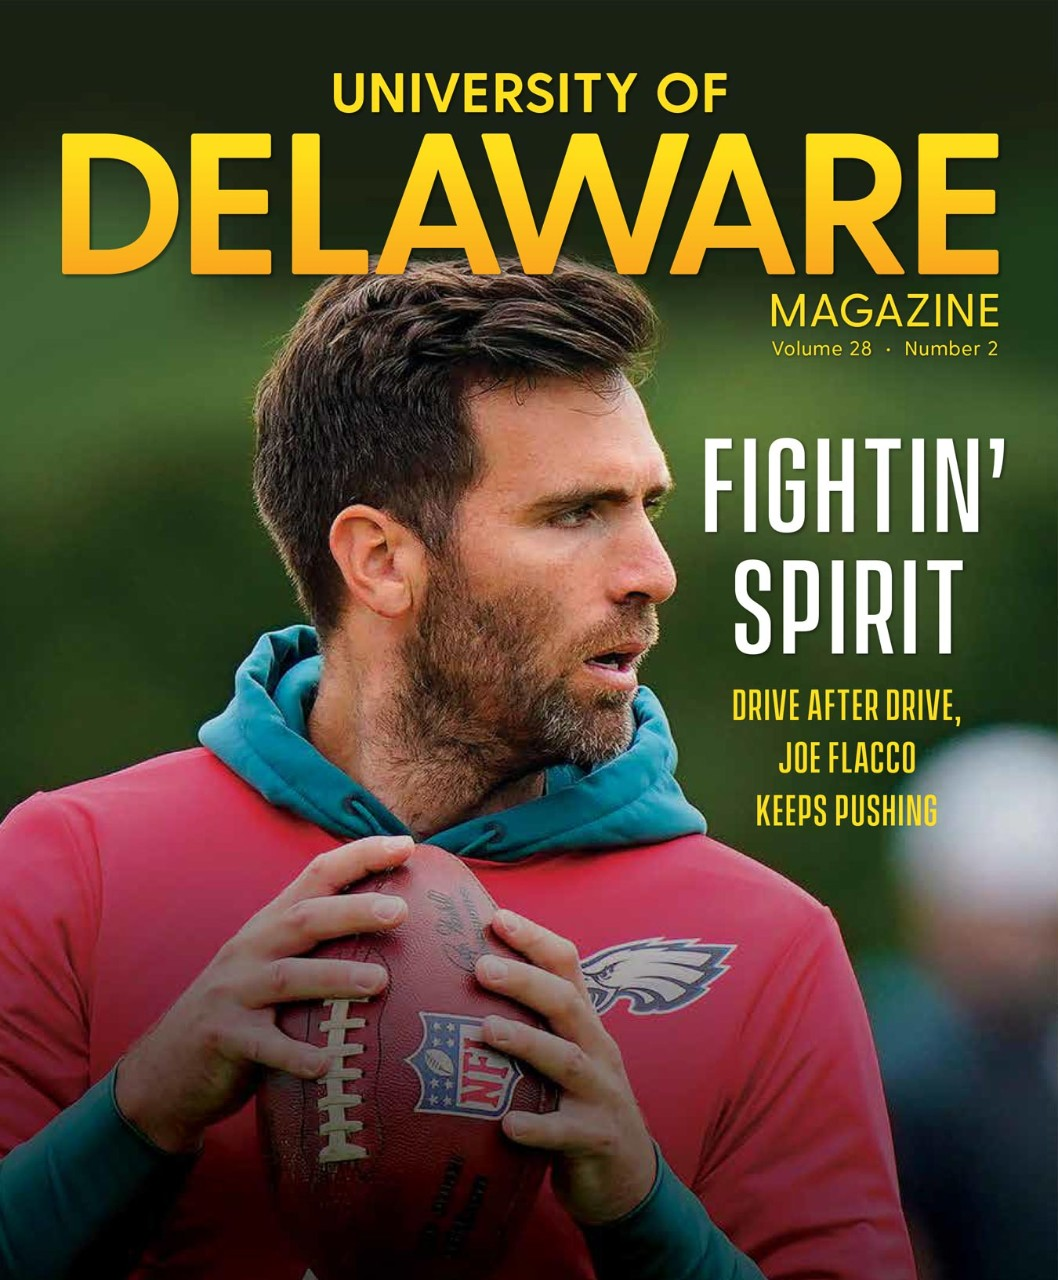 UD Magazine Cover with image of professional football player, Joe Flacco.